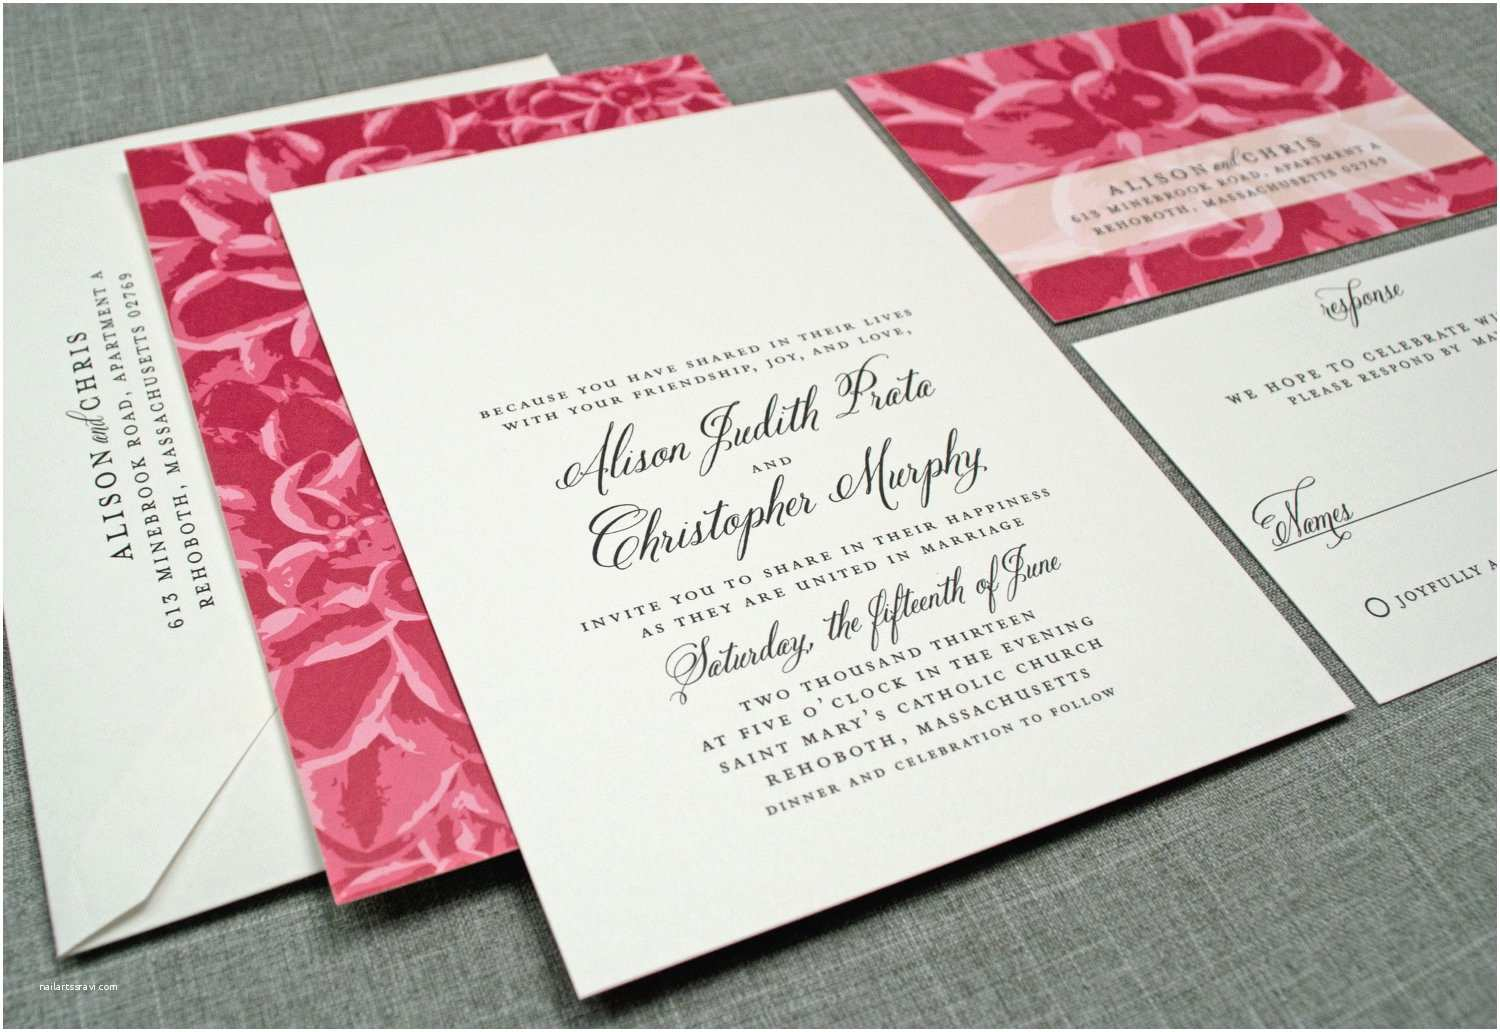 Wedding Reception Invitations Elegant Wedding Invitations Floral Print